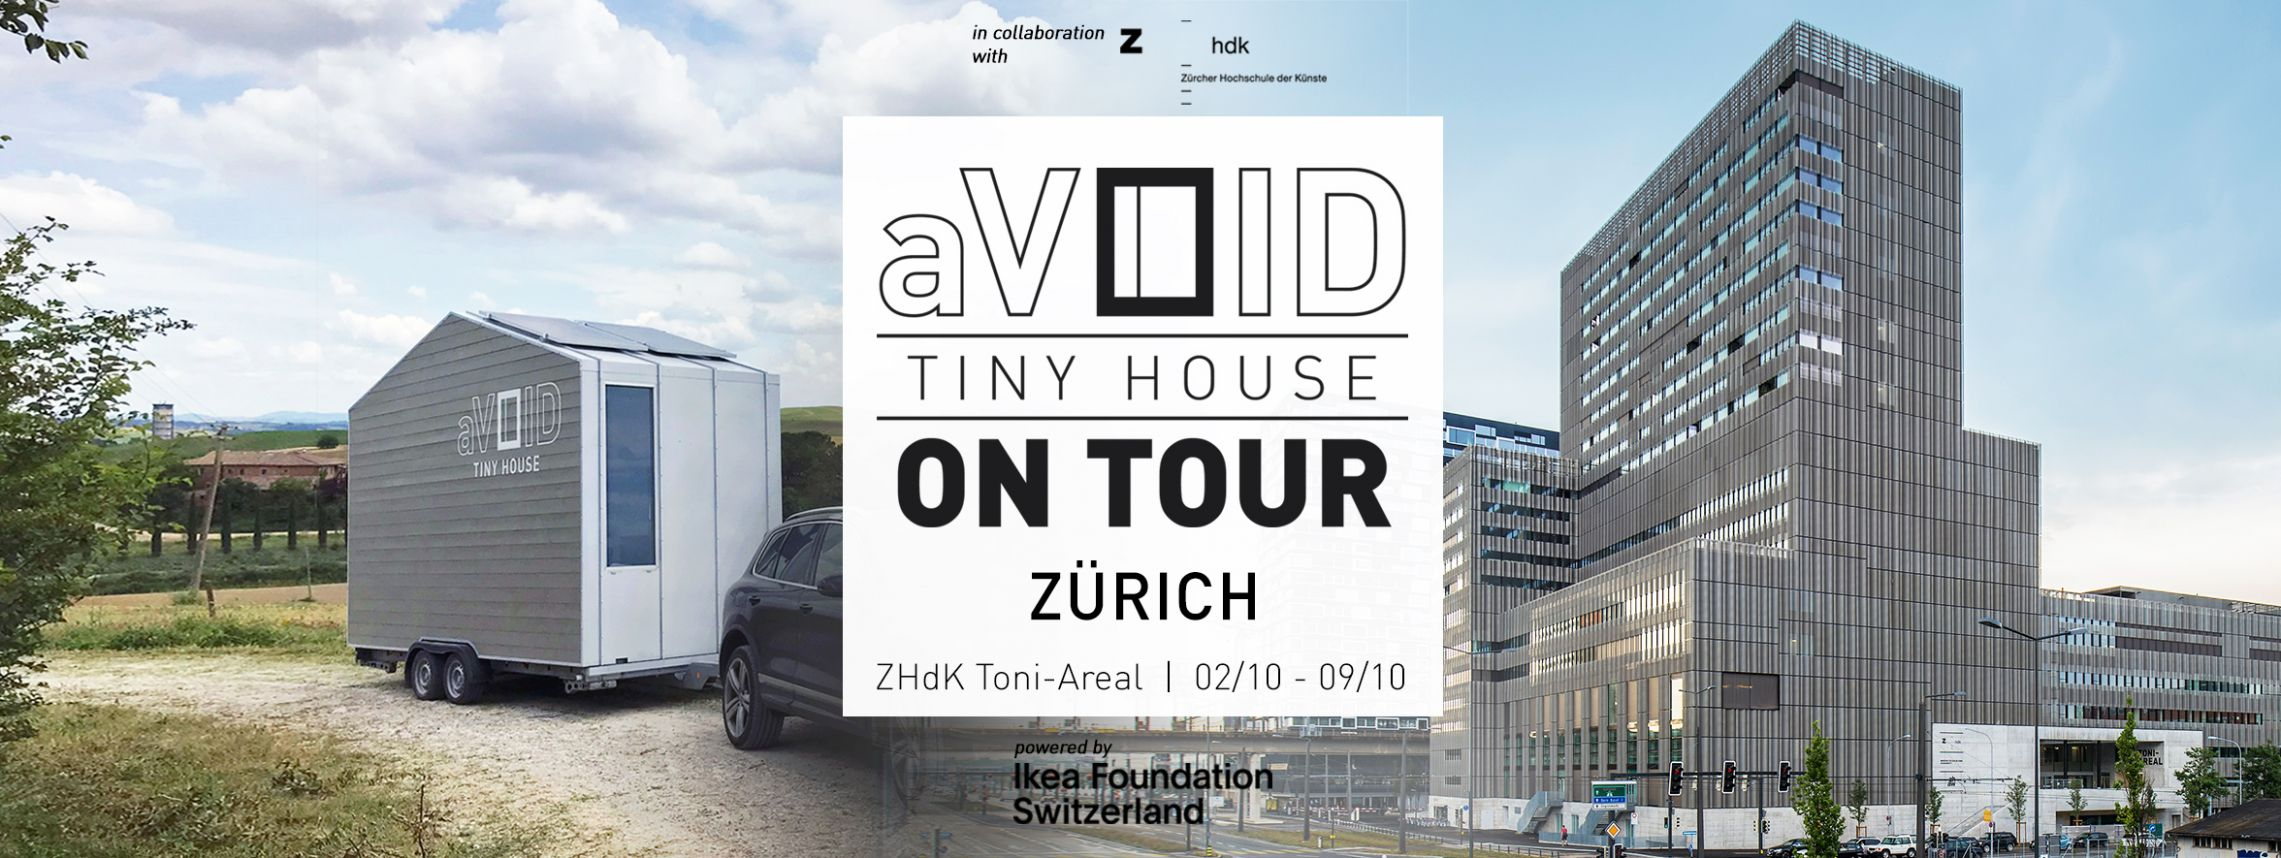 aVOID Tour Zurich Cover - Leonardo Di Chiara